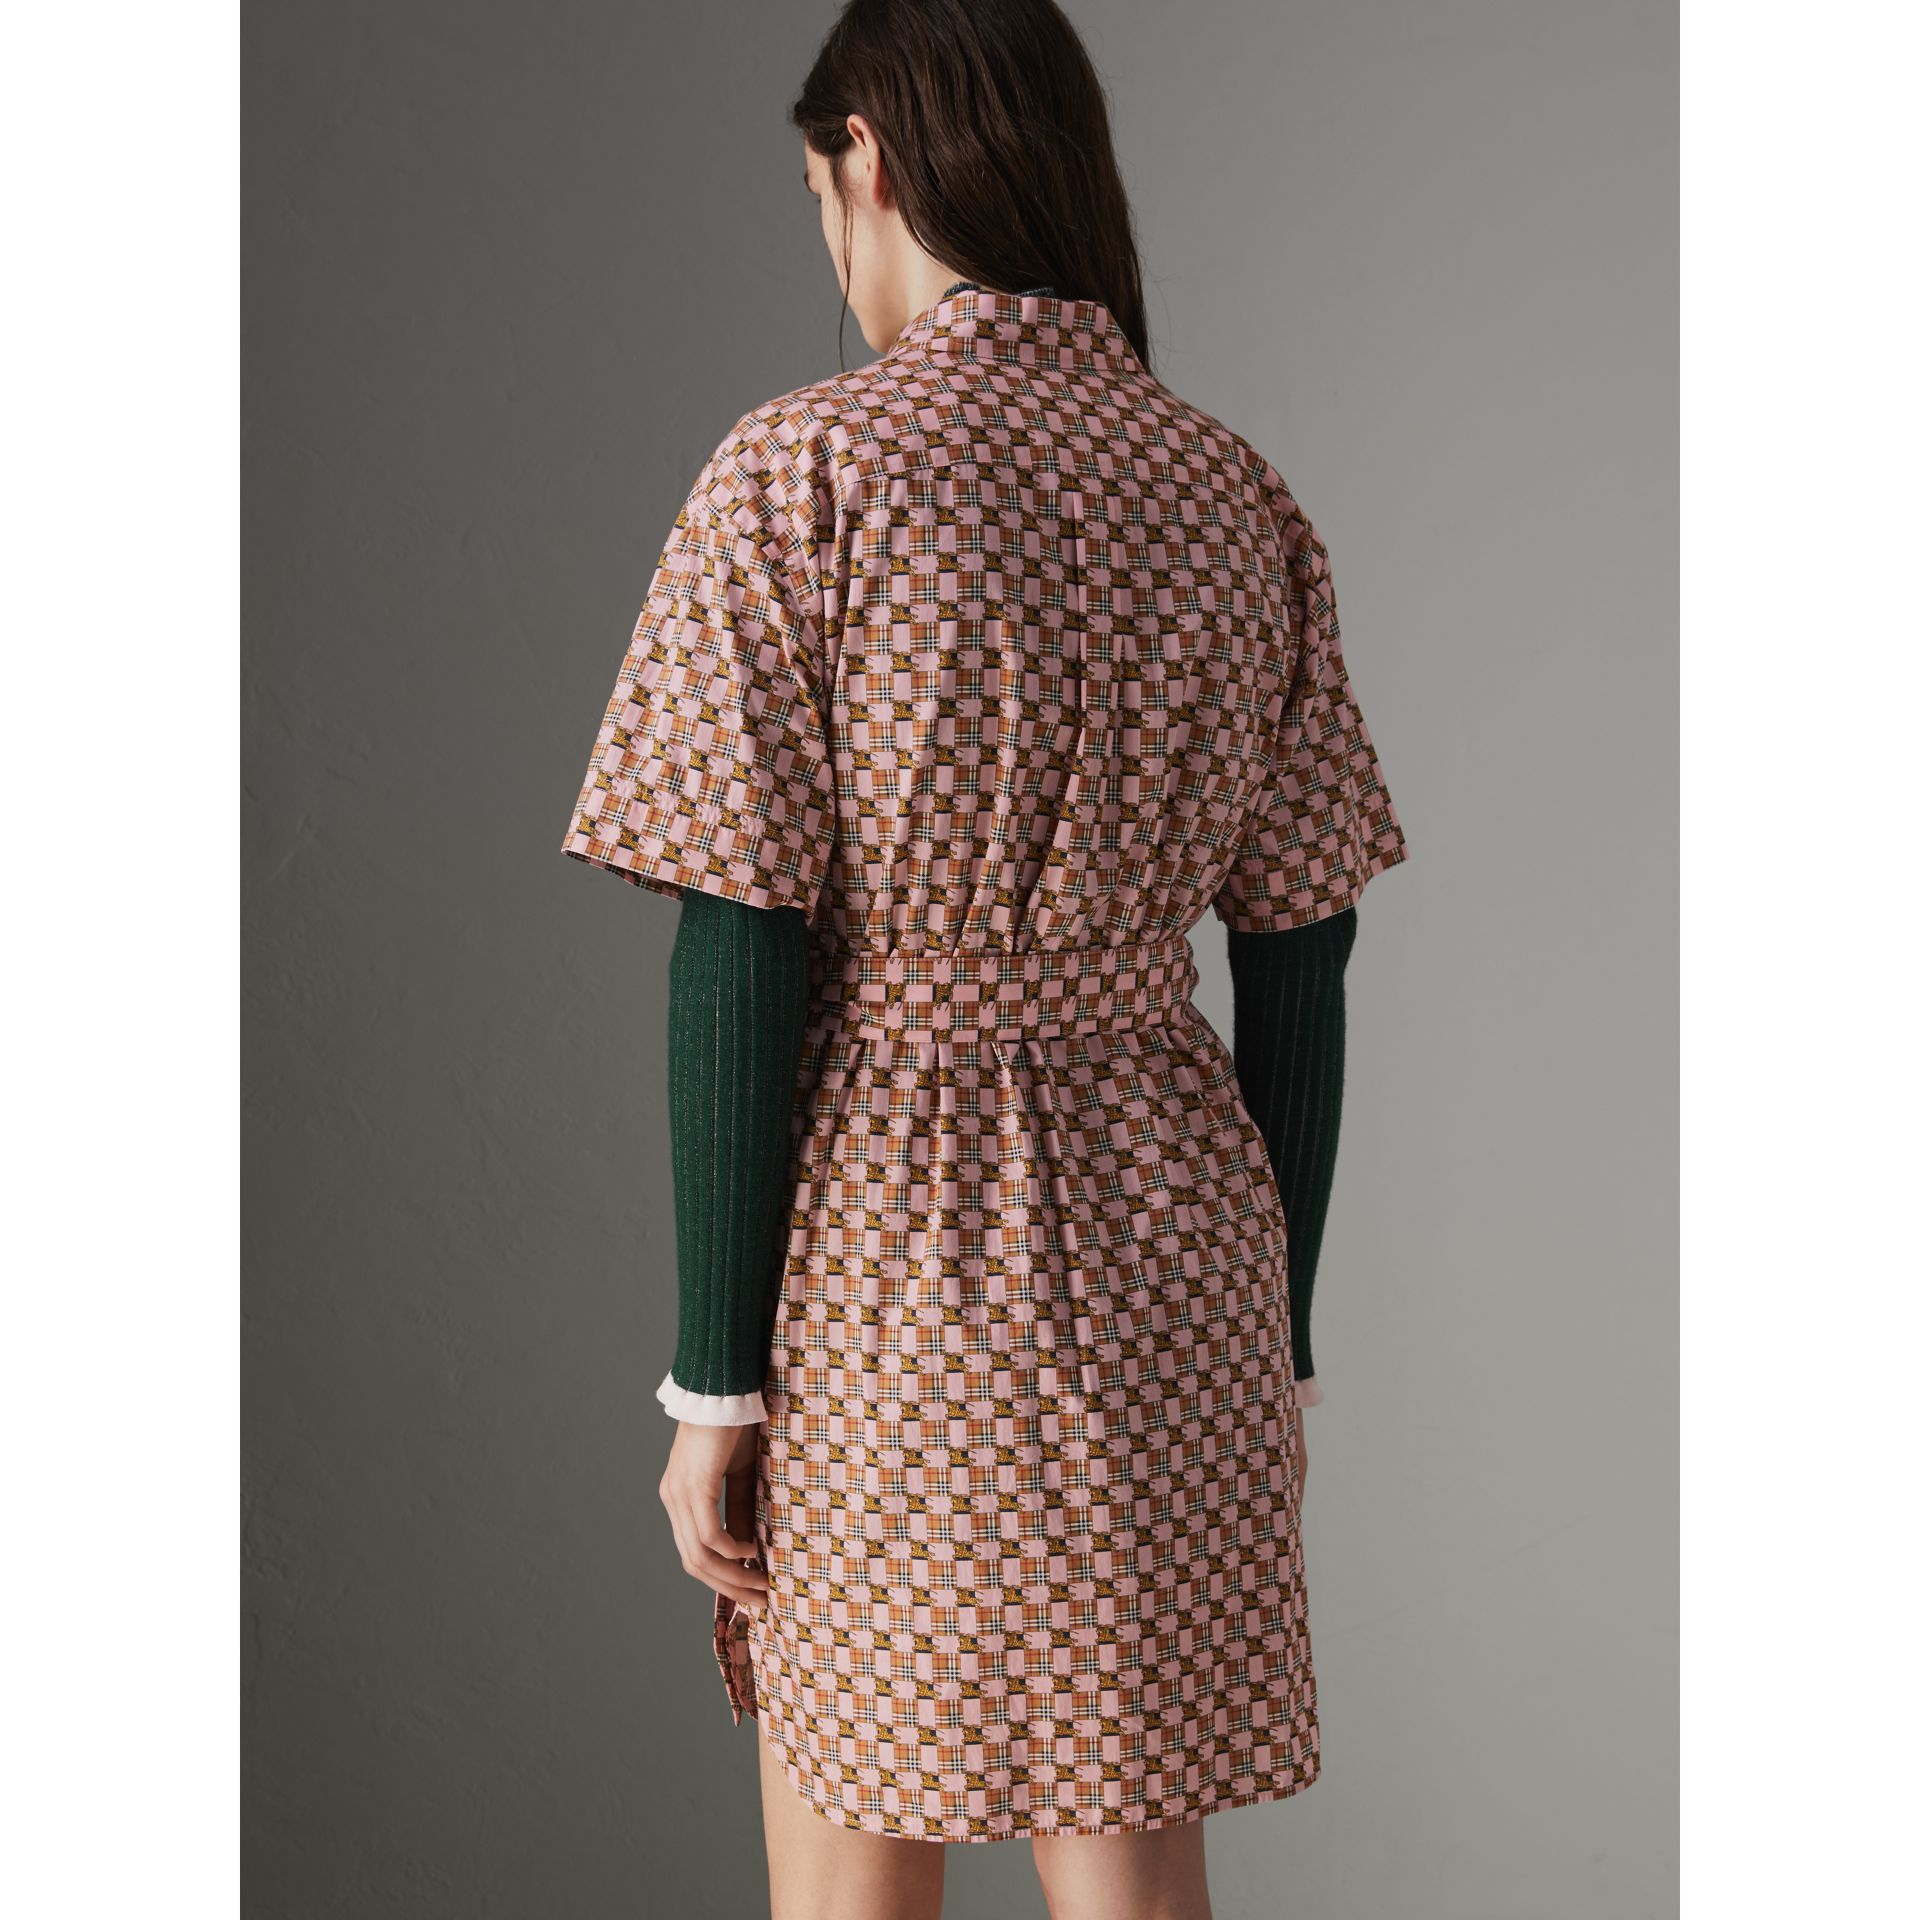 Tiled Archive Print Cotton Shirt Dress in Pink - Women | Burberry United Kingdom - gallery image 2